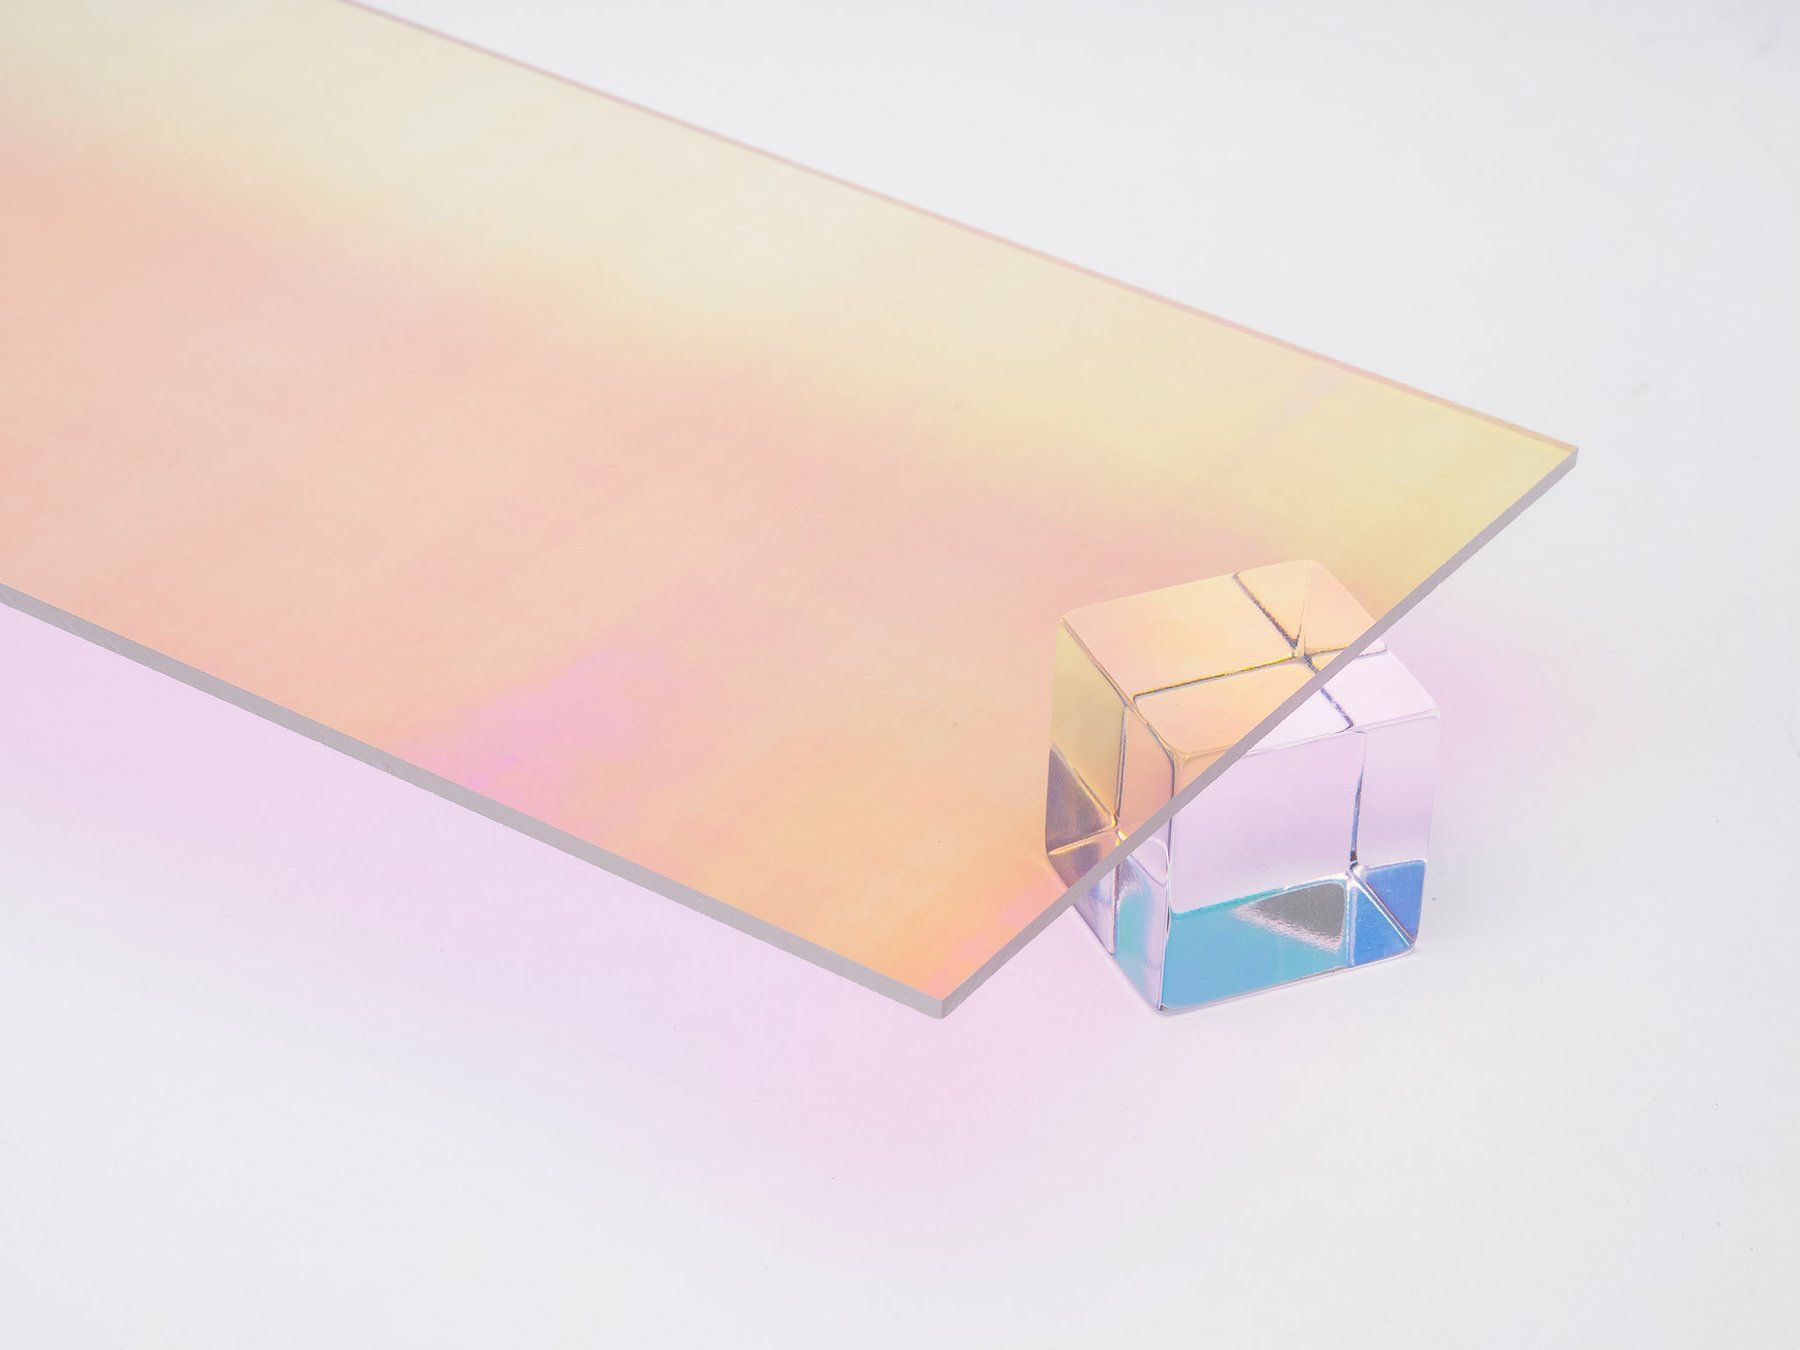 a special rainbow colored iridescent acrylic sheet this unique sheet has a subtle mirror like finish and changes color with viewing angle its transparent - Colored Transparent Sheets